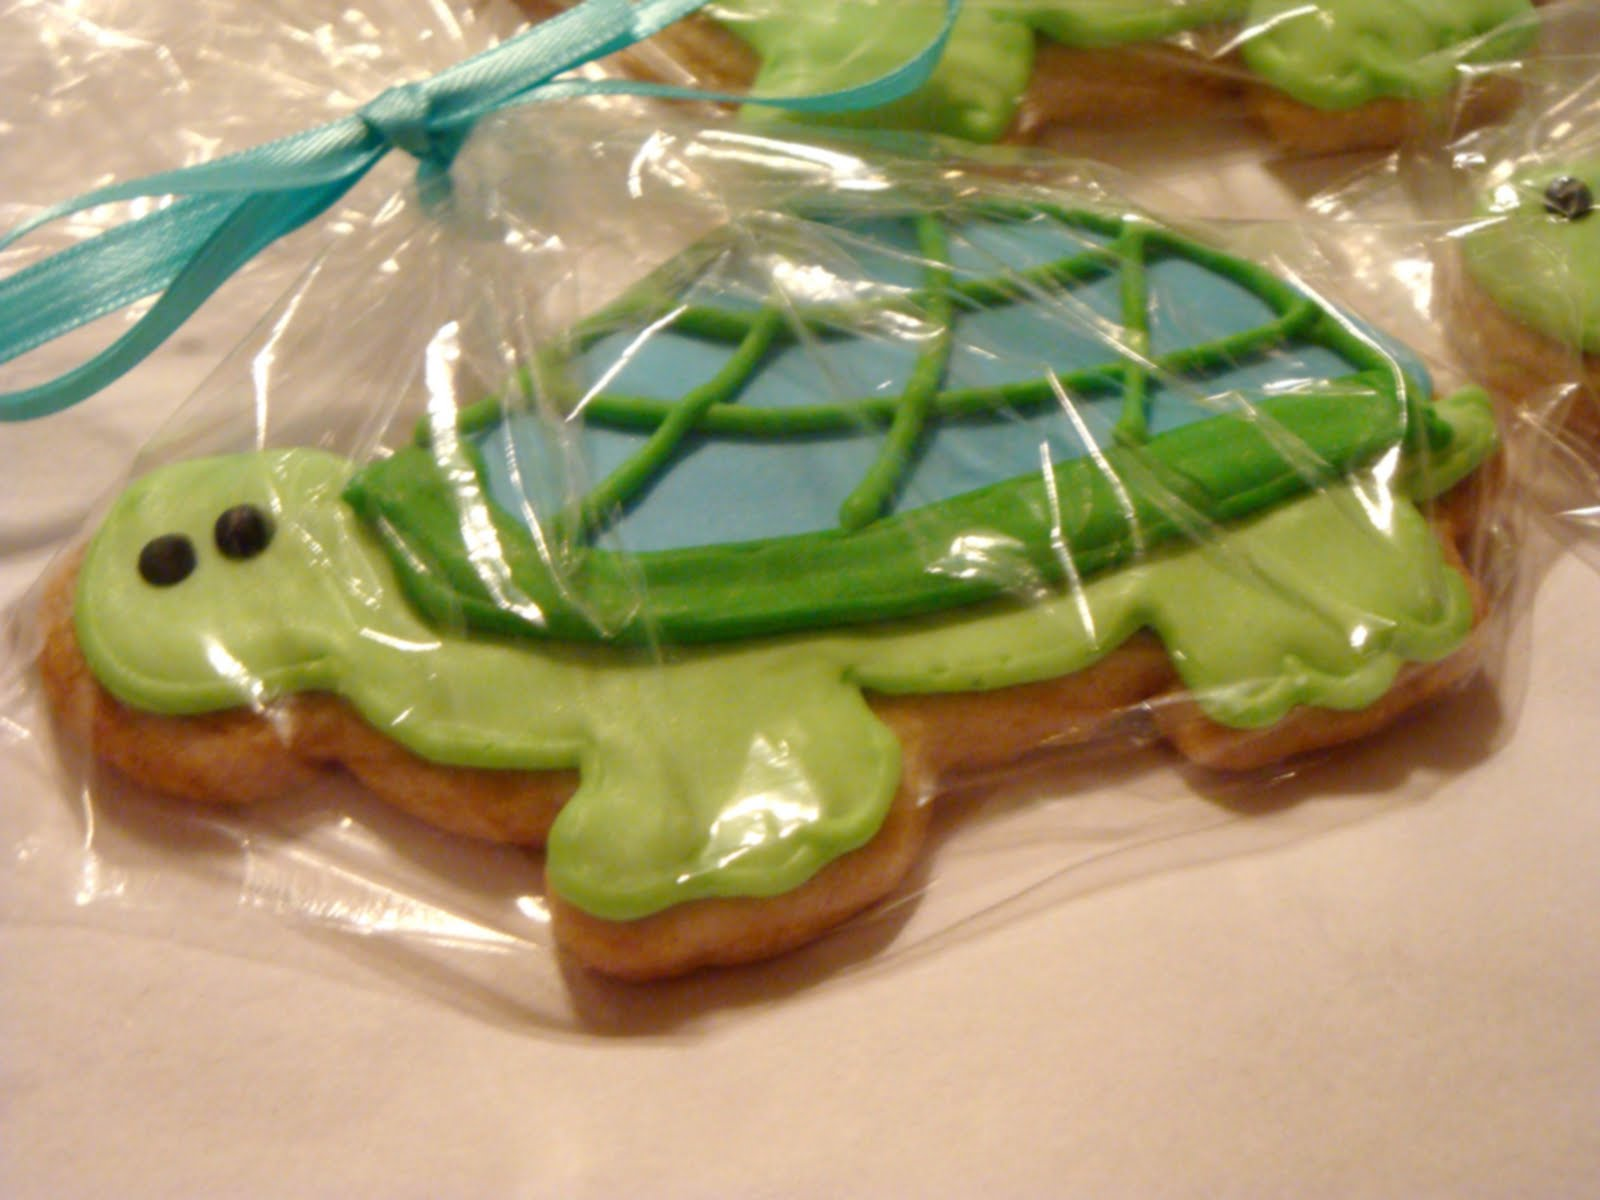 pin turtle theme cake baby shower ideas cake on pinterest